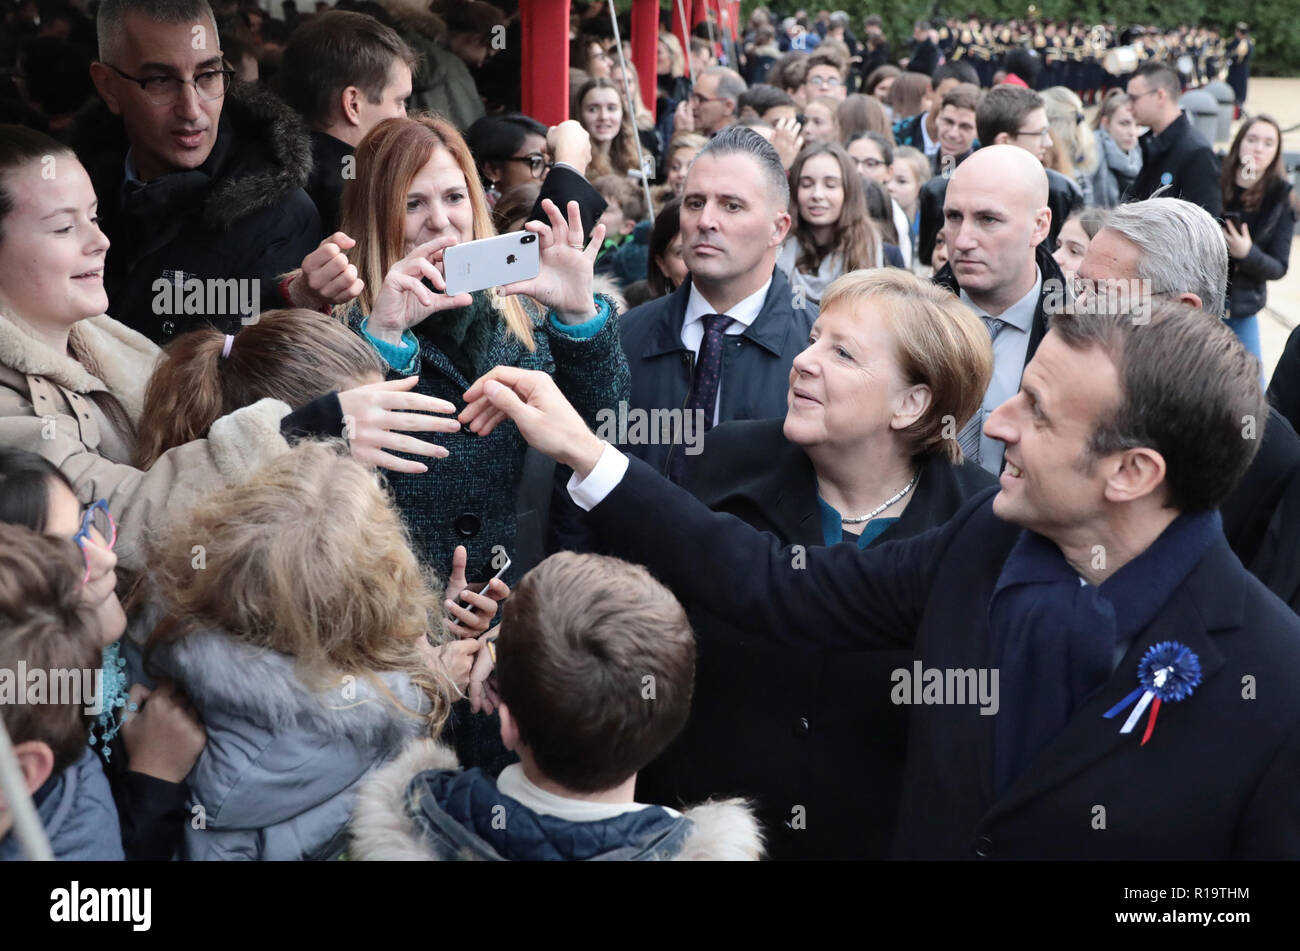 Compiegne, France. 10th Nov, 2018. German Chancellor Angela Merkel (CDU) and French President Emmanuel Macron meet with schoolchildren at the end of the First World War 100 years ago near the northern French town of Compiègne in memory of their memory. The armistice was signed on 11 November 1918 in a converted dining car in the clearing. The memorial is located on this site. Credit: Kay Nietfeld/dpa/Alamy Live News - Stock Image